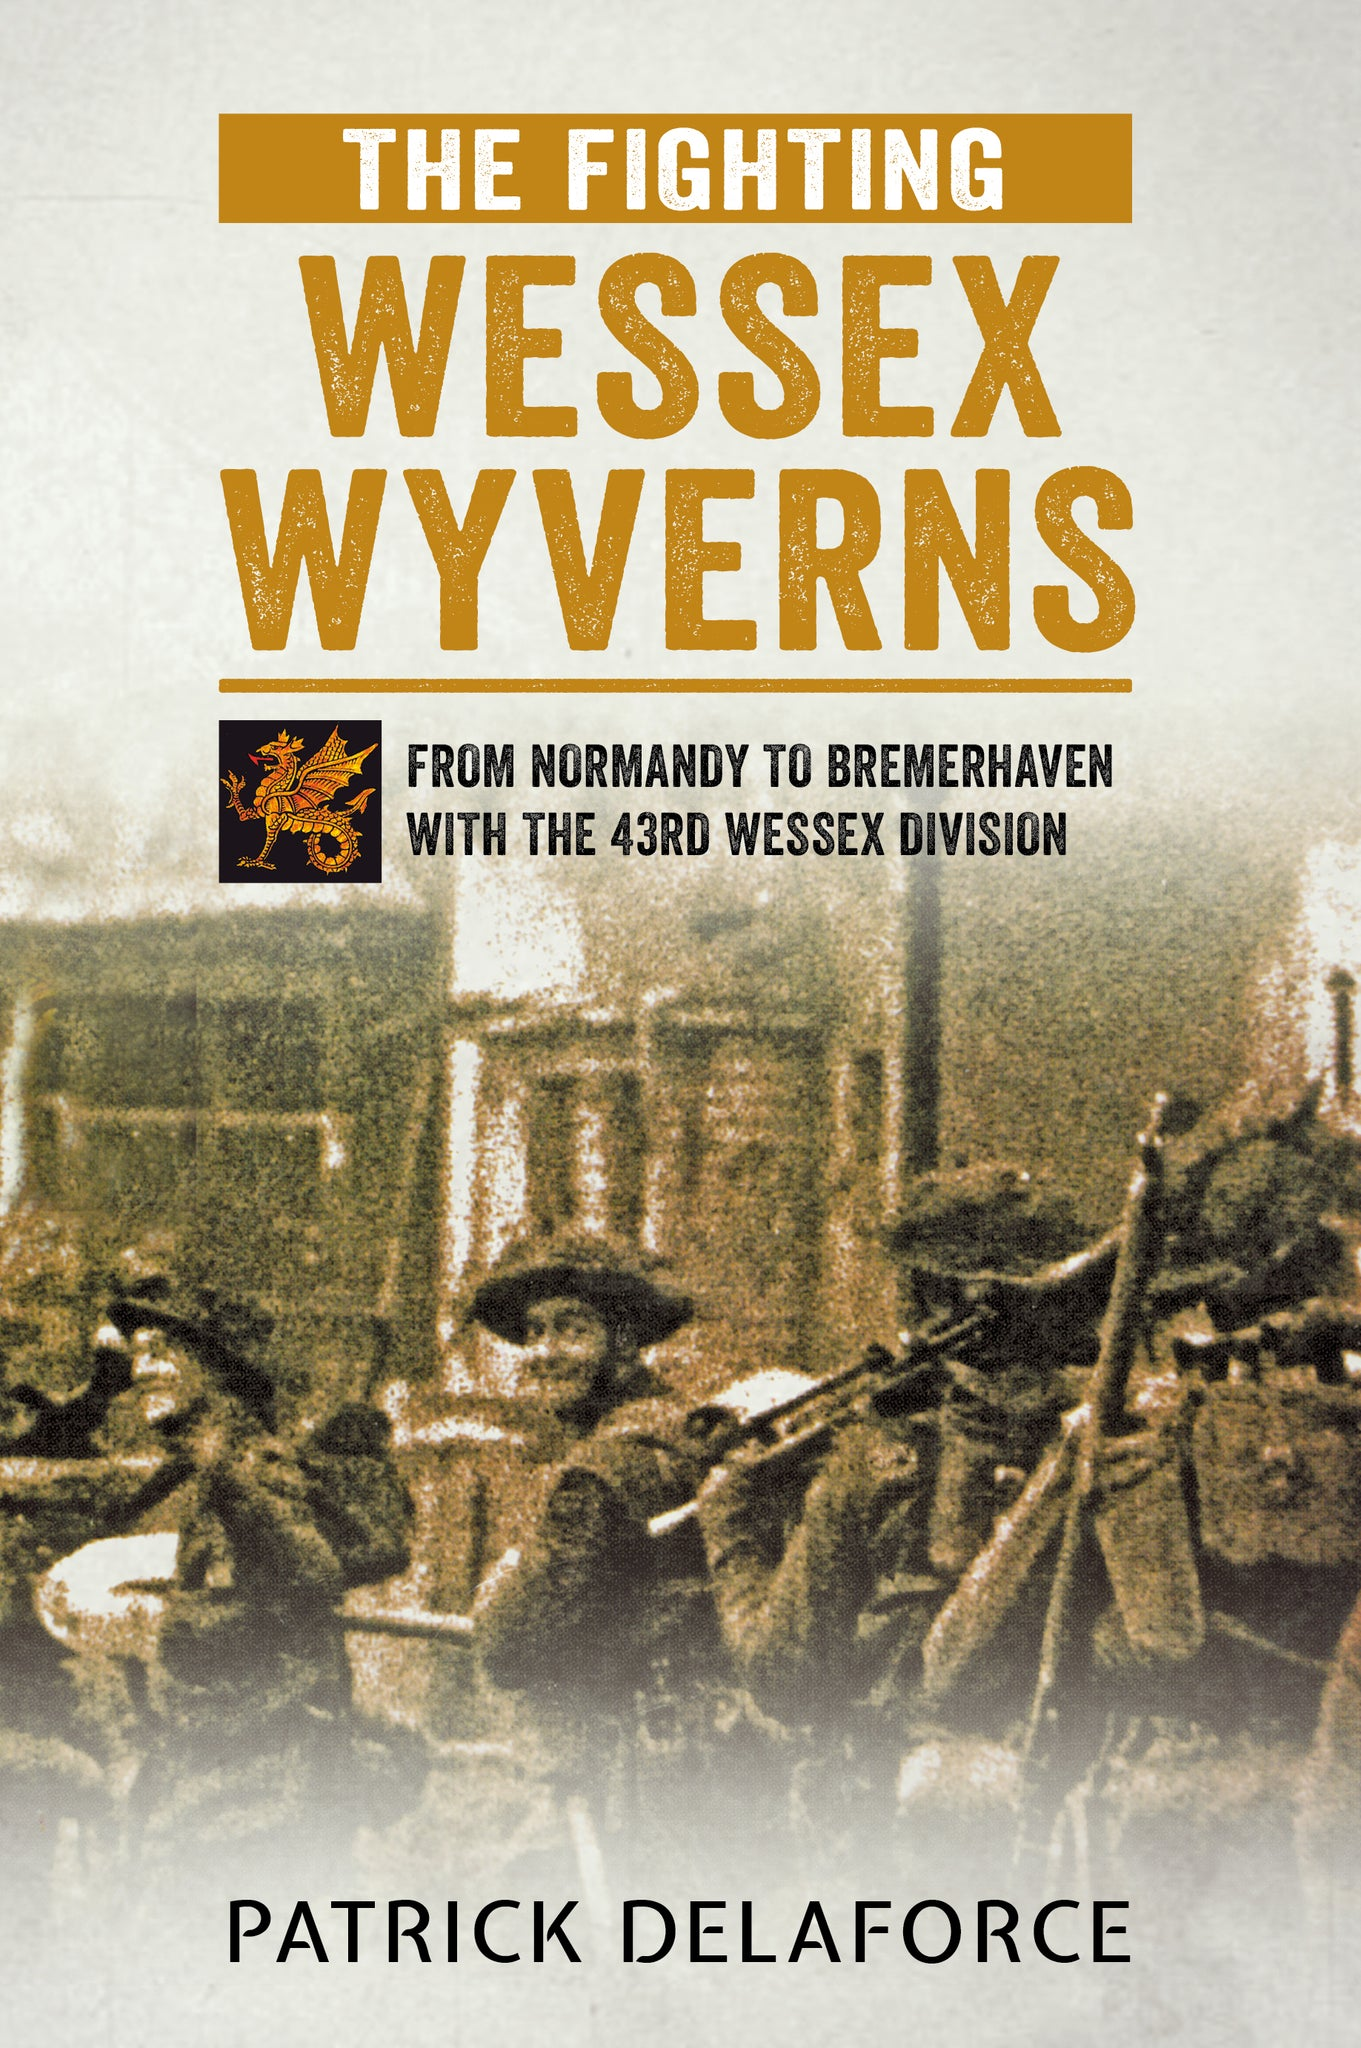 The Fighting Wessex Wyverns: From Normandy to Bremerhaven with the 43rd Wessex Division